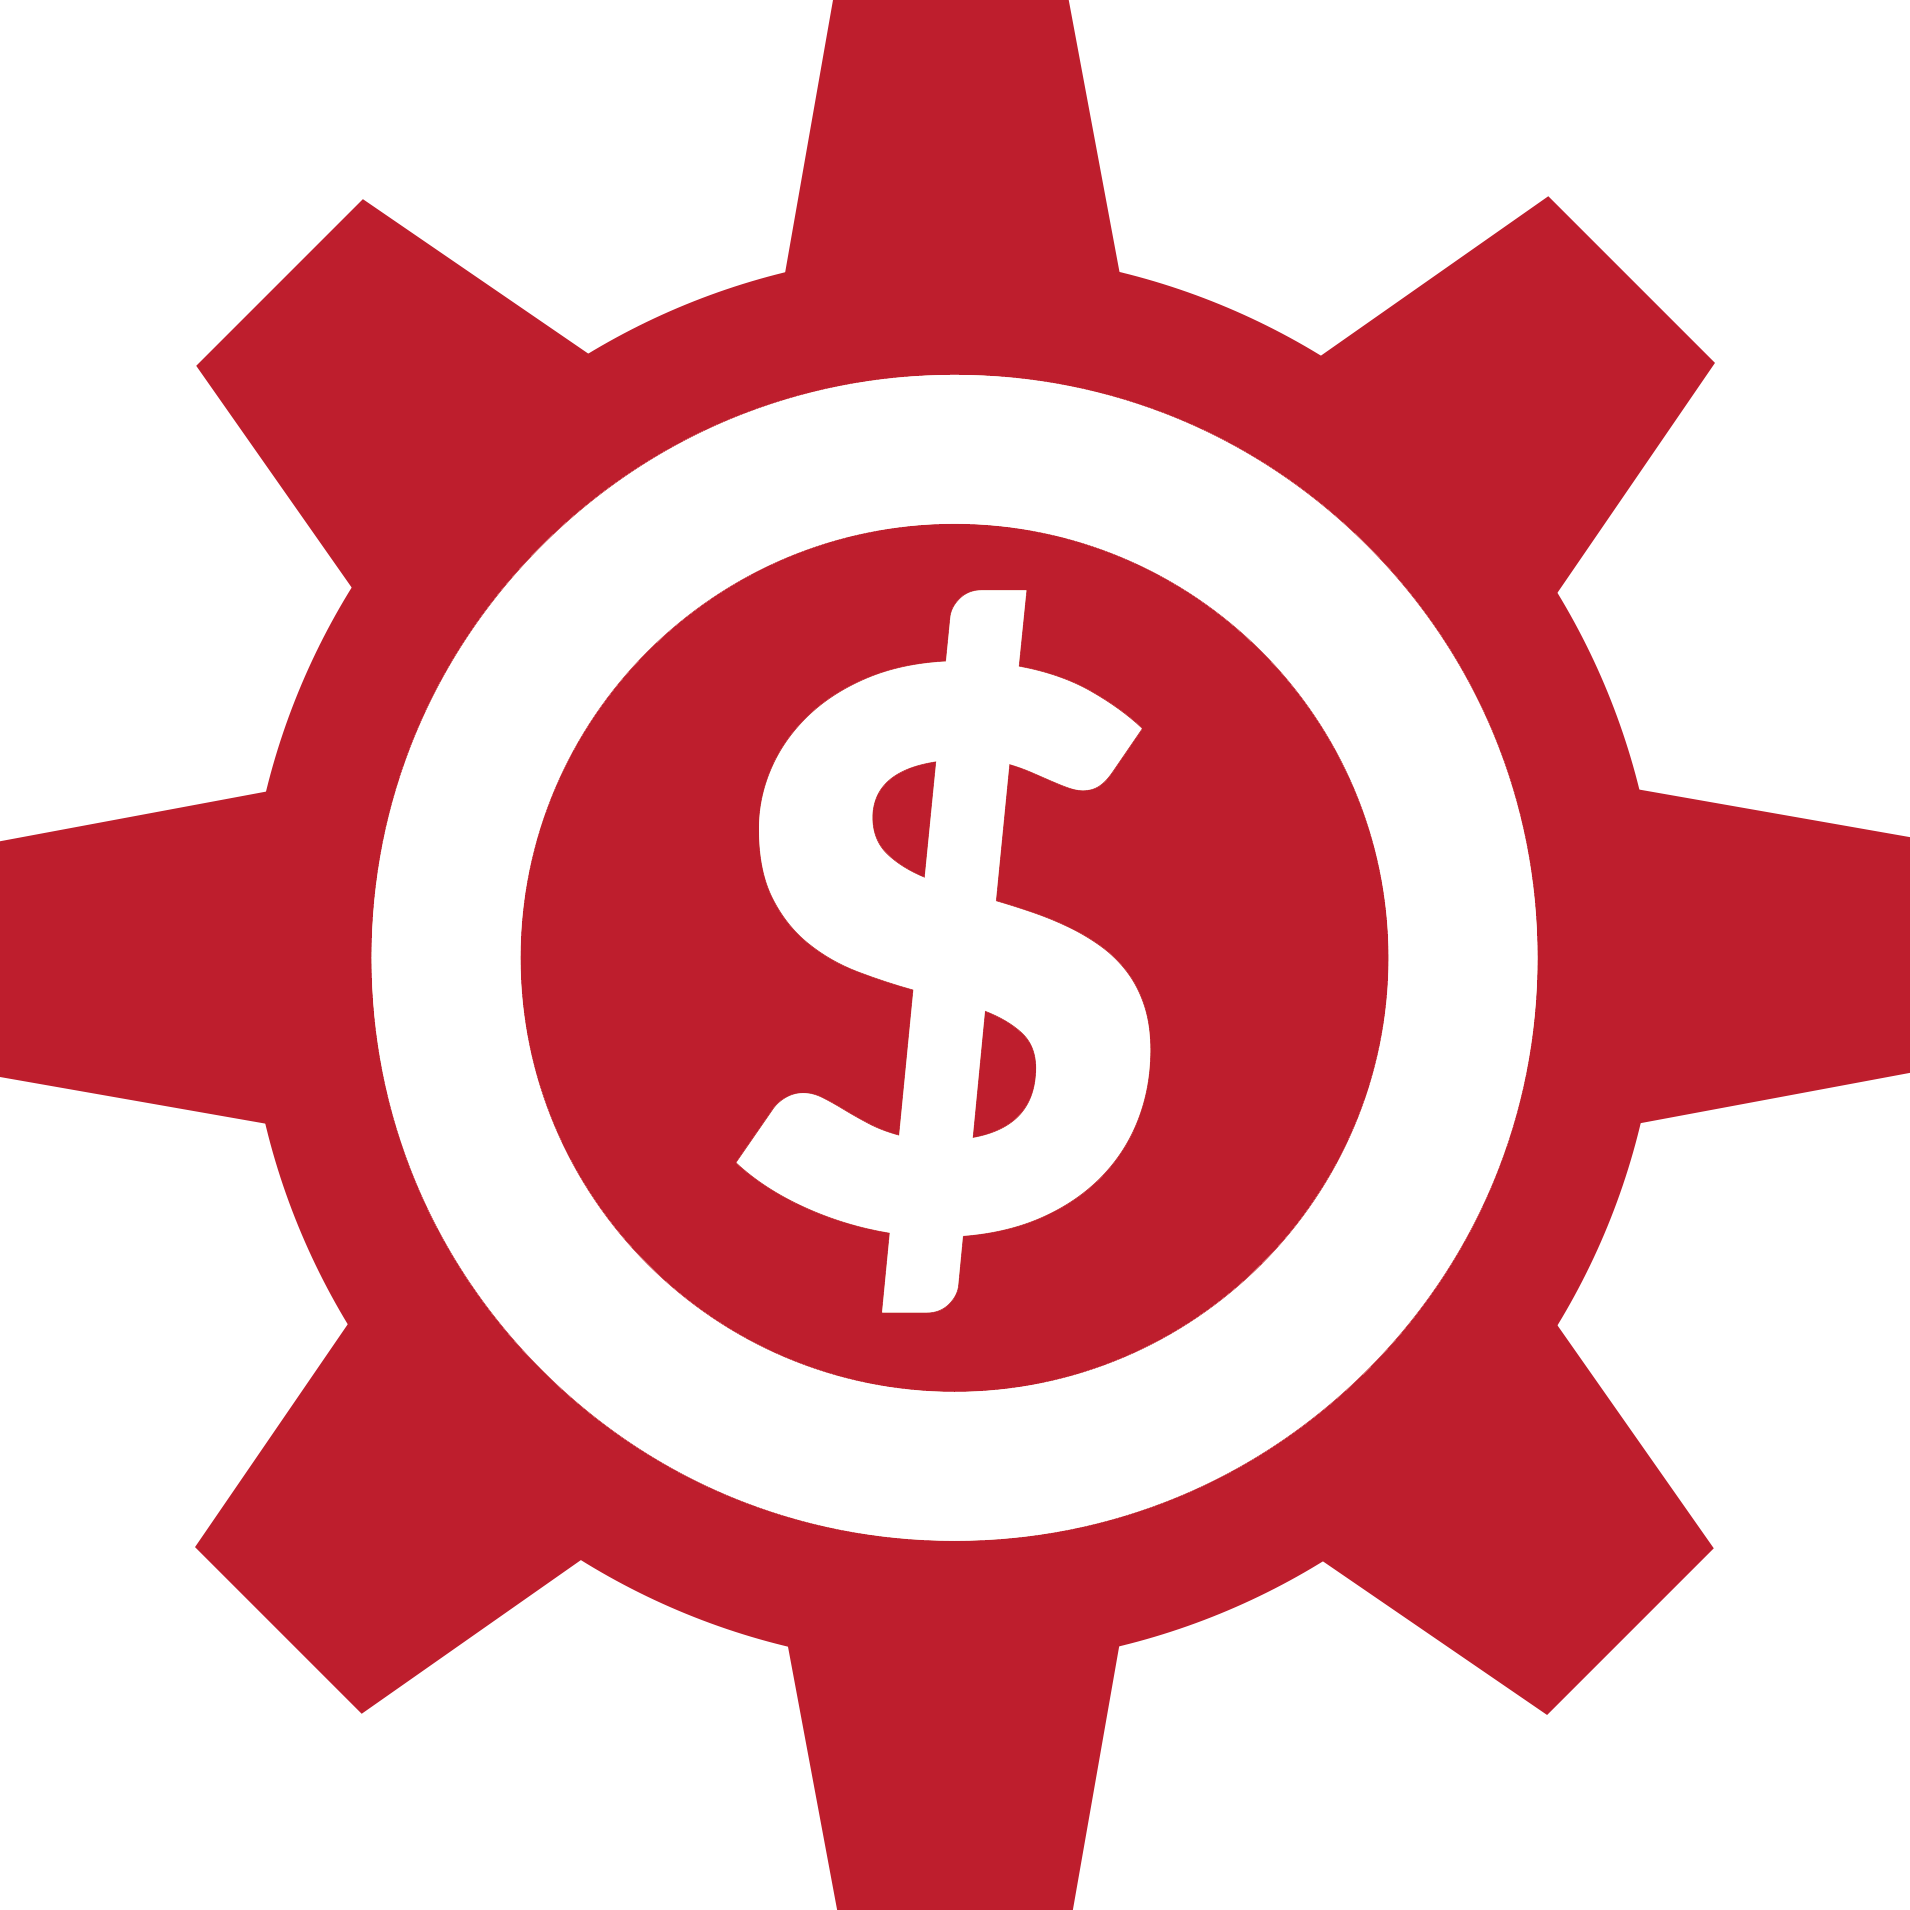 gear with dollar sign in center